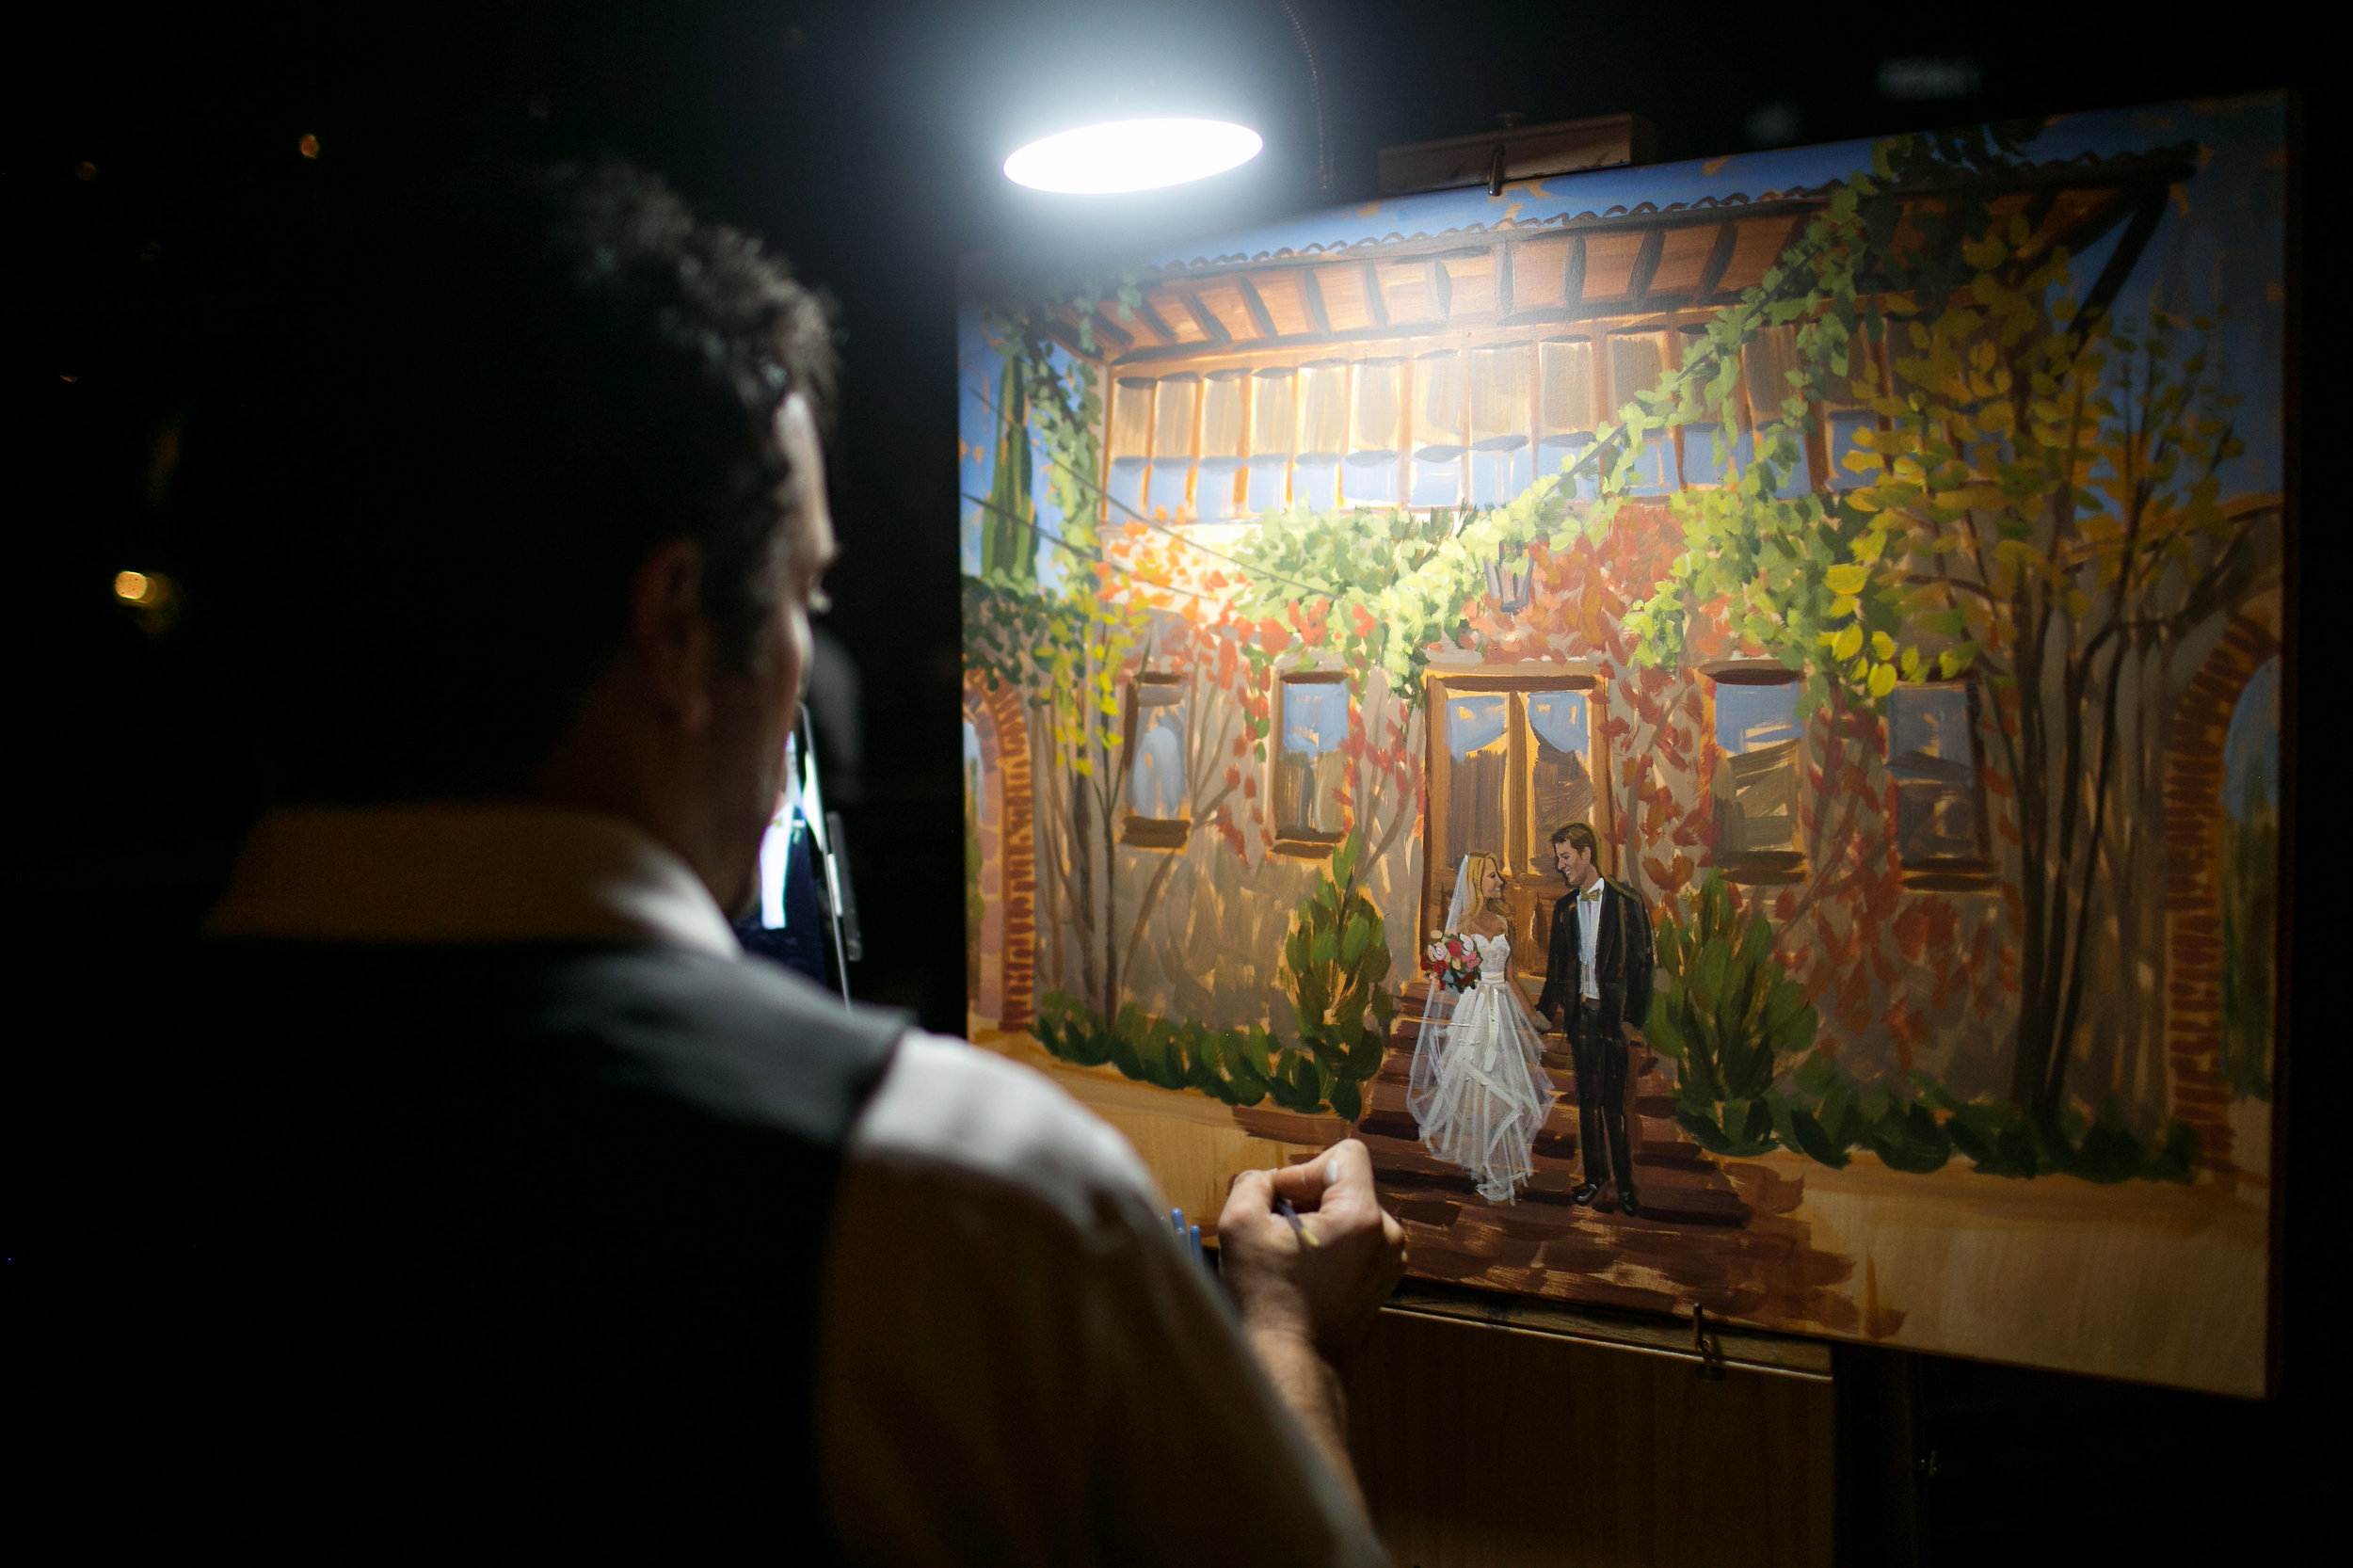 Live wedding painter, Ben Keys, adding the details to Kelsey + Eric's ceremony painting at Summerour Studio in Atlanta.